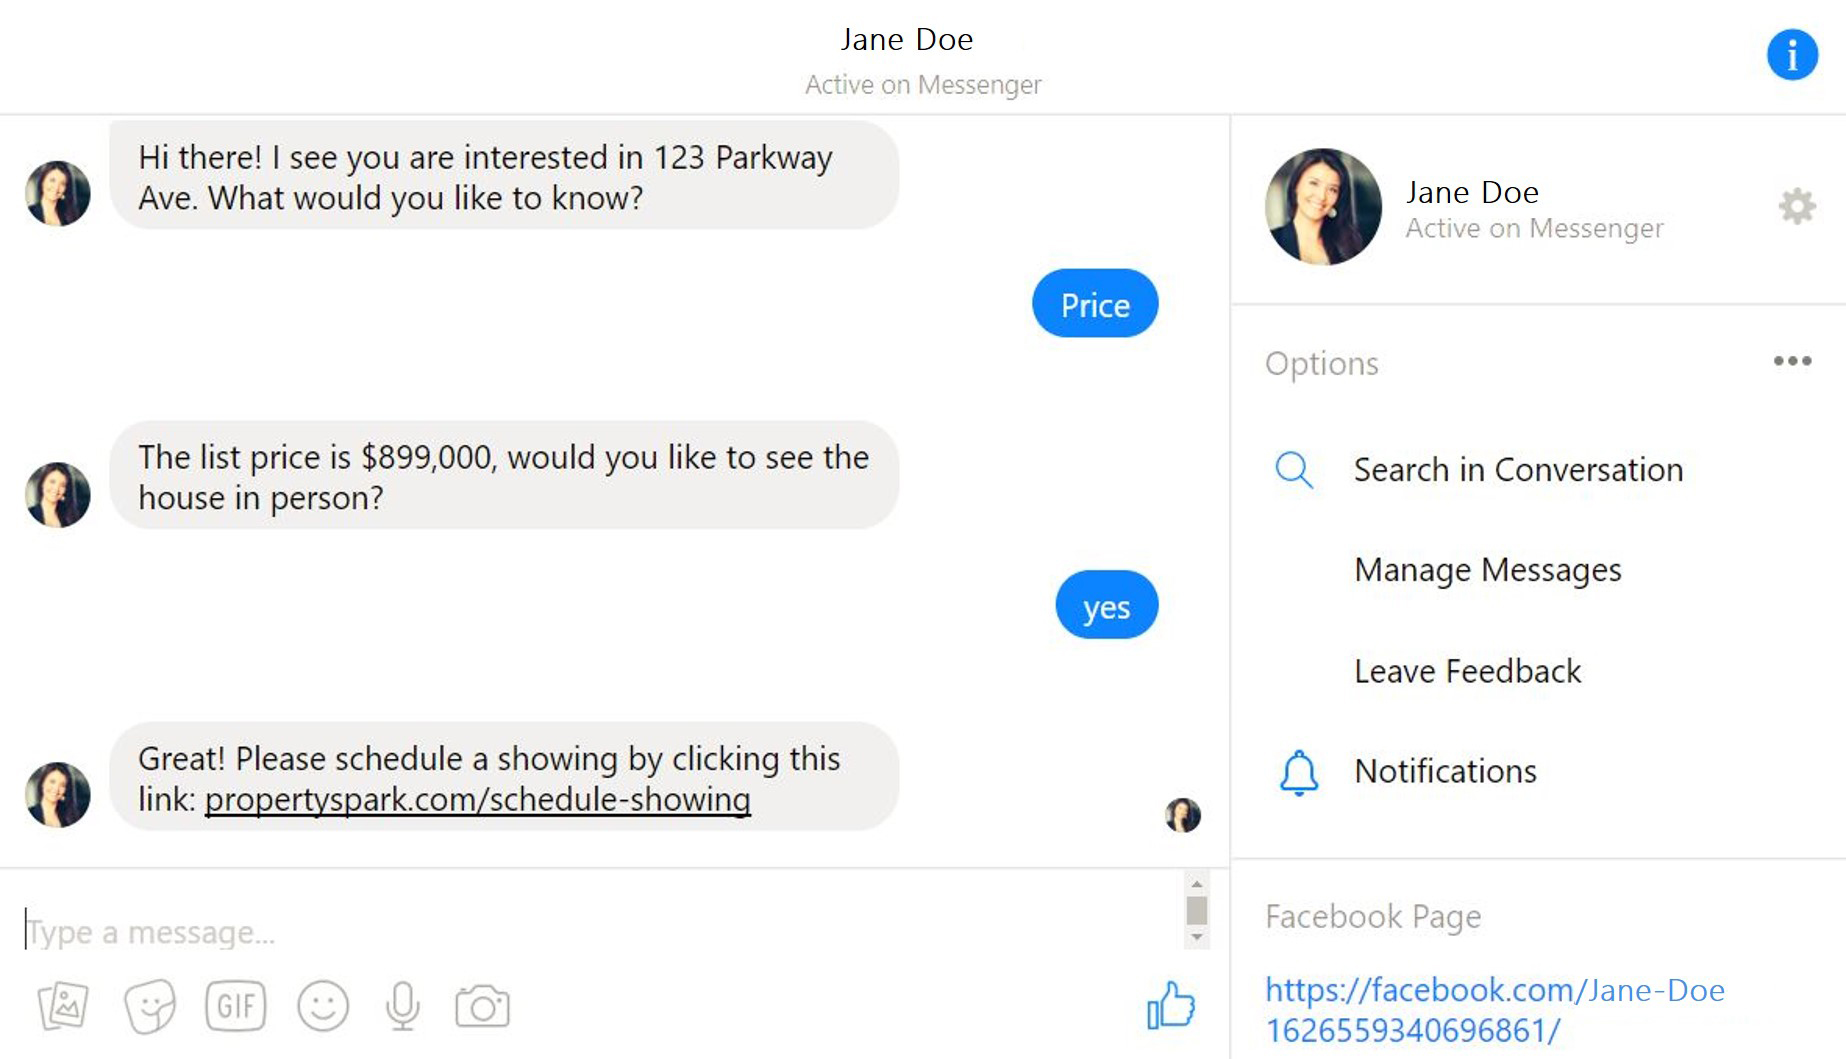 Chatbot Screenshot - Jane Doe